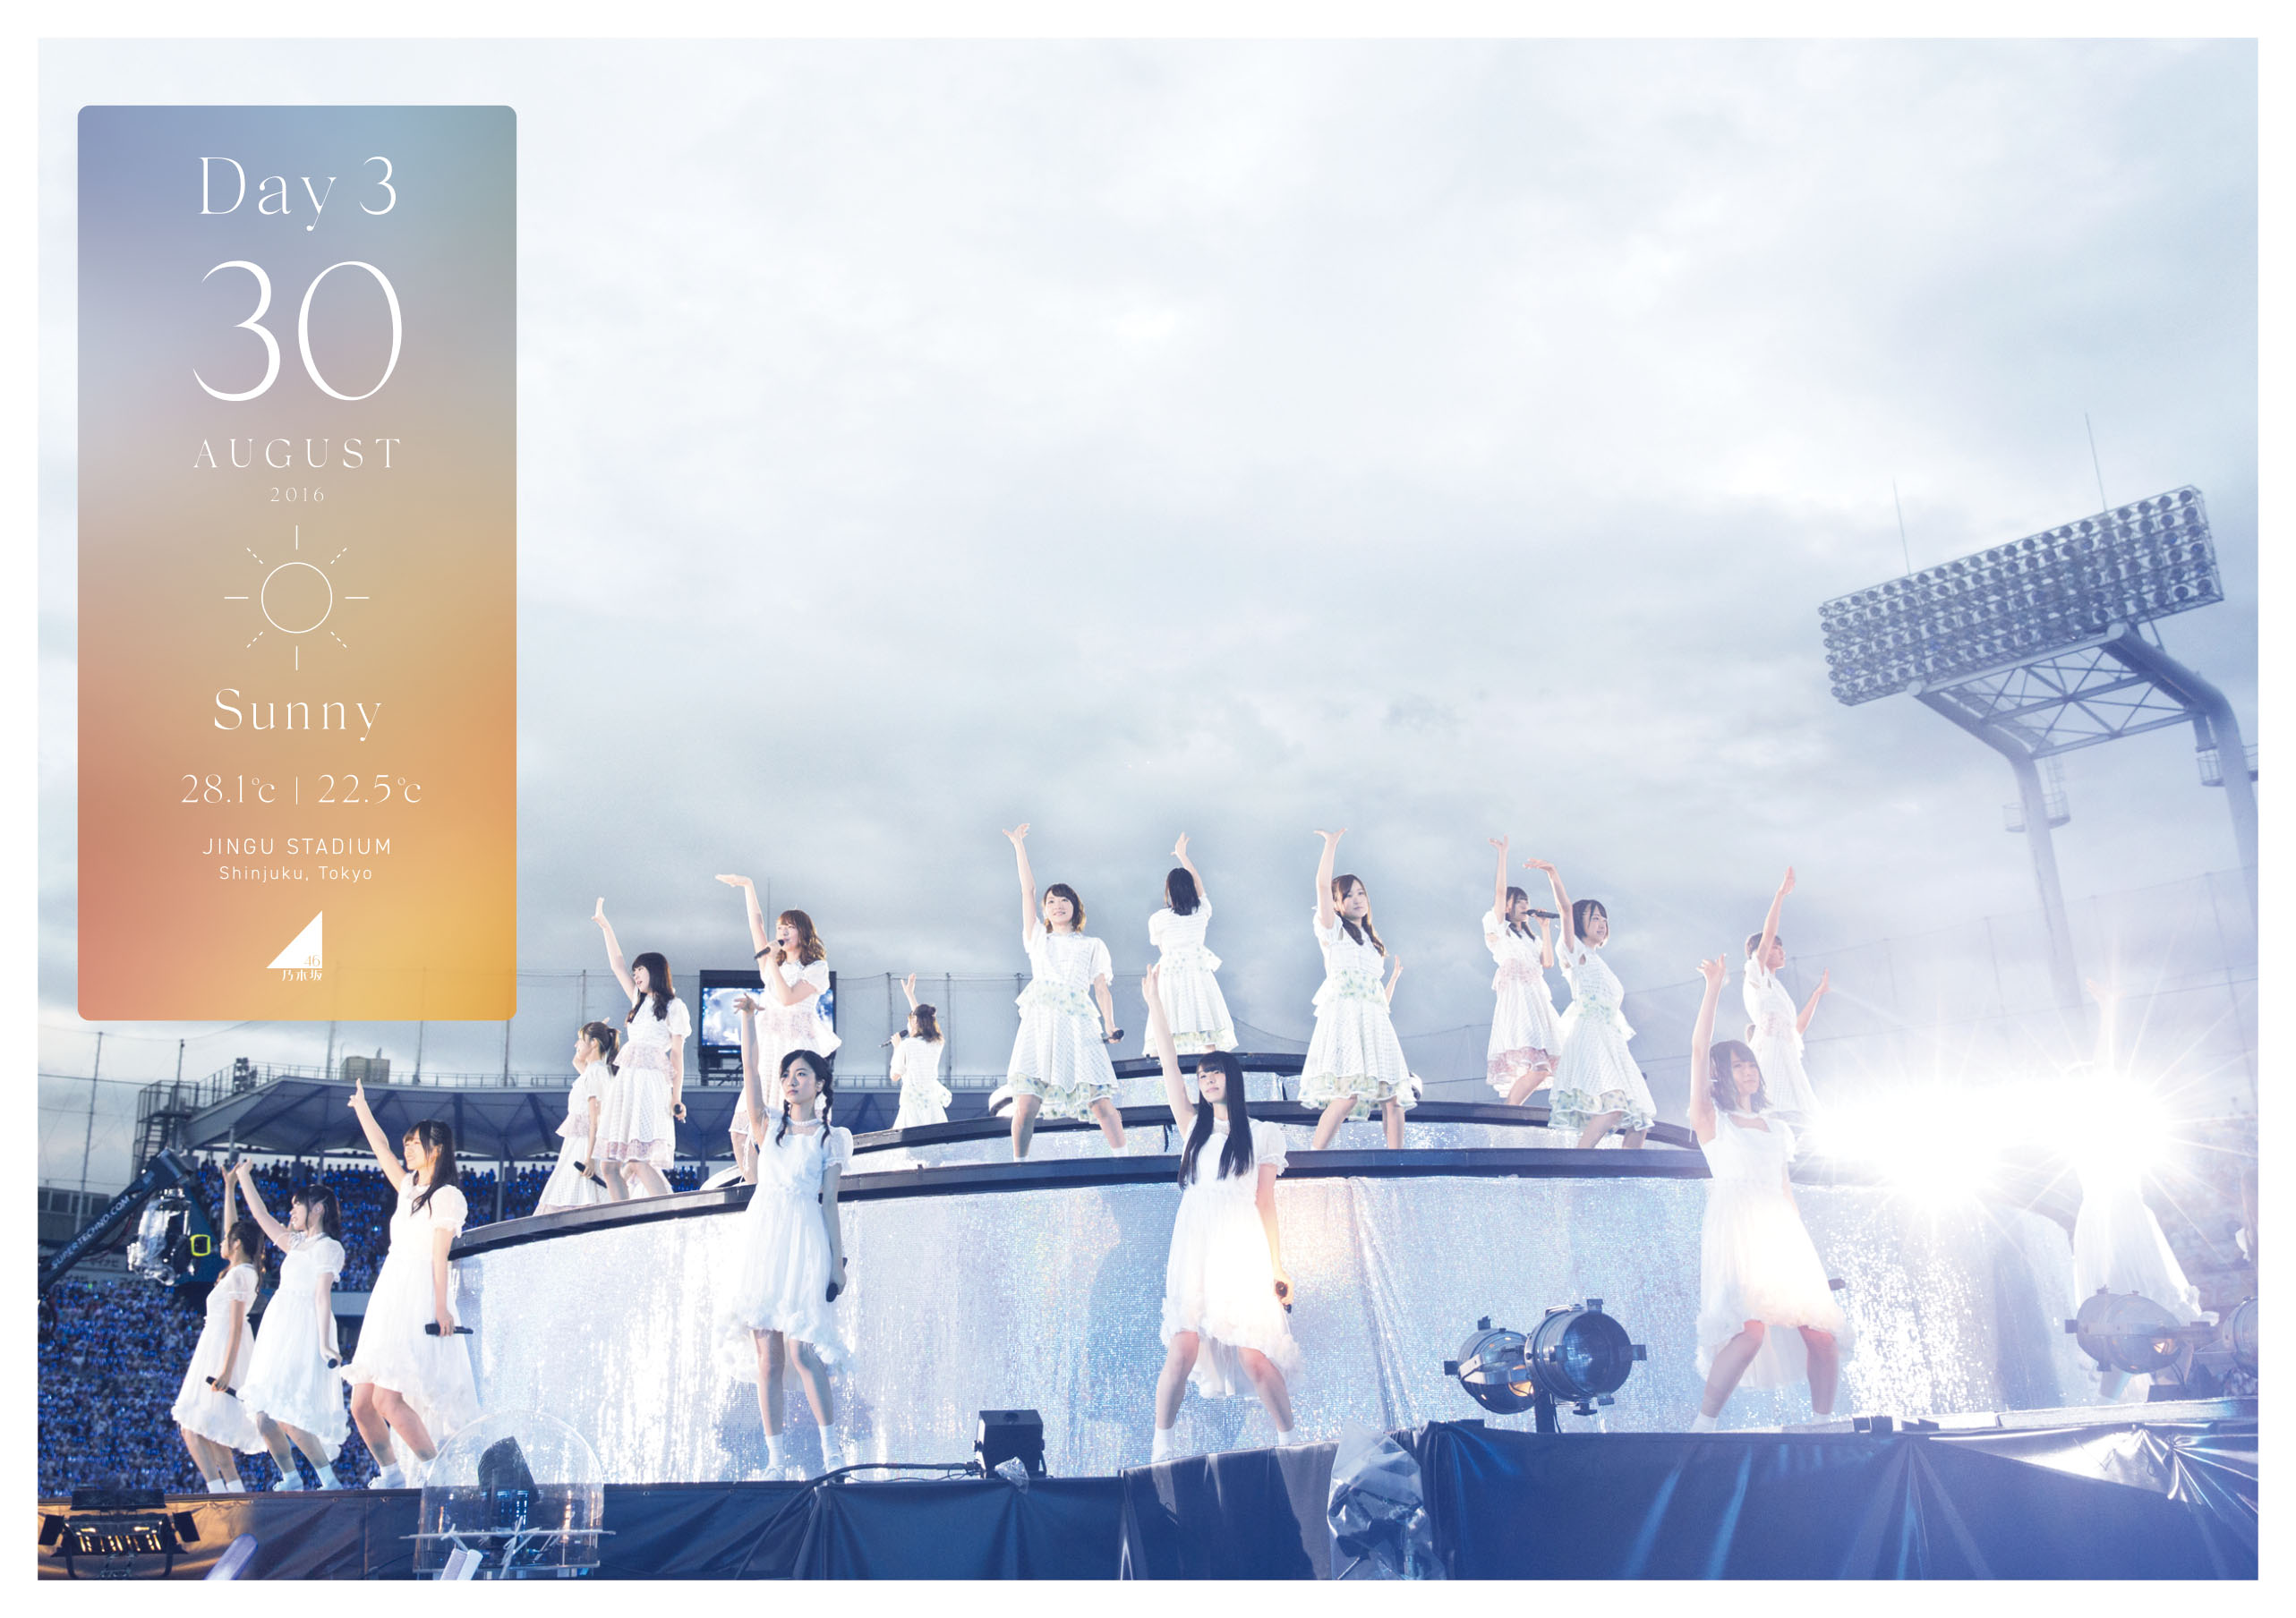 【DVD】『4th YEAR BIRTHDAY LIVE 2016.8.28-30 JINGU STADIUM』<Day-3>